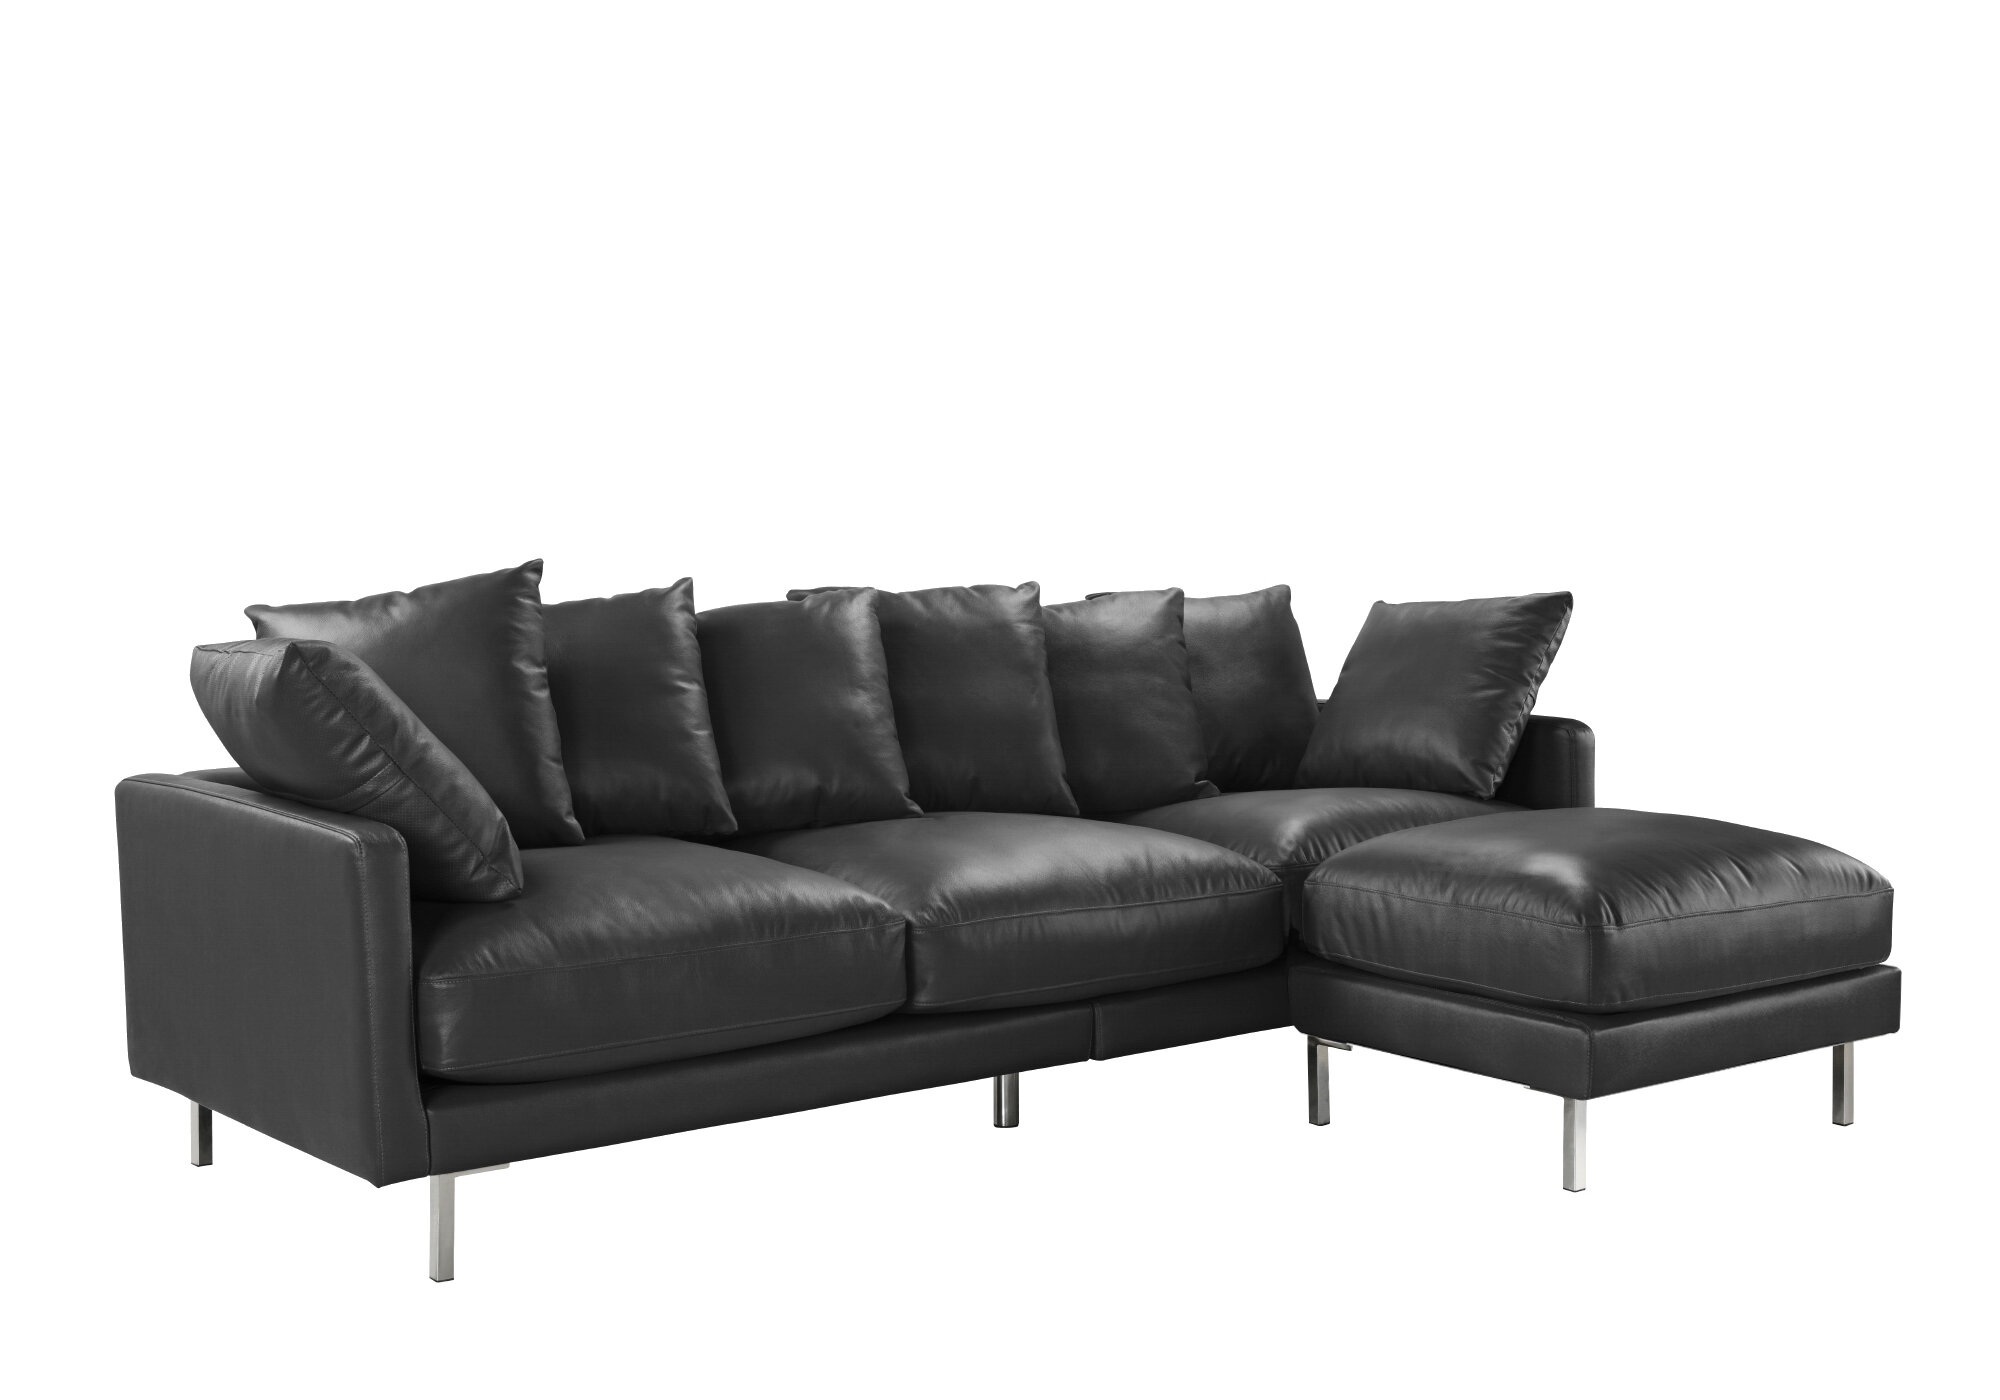 Peachy Gaillarde Leather Reversible Modular Sectional With Ottoman Pdpeps Interior Chair Design Pdpepsorg